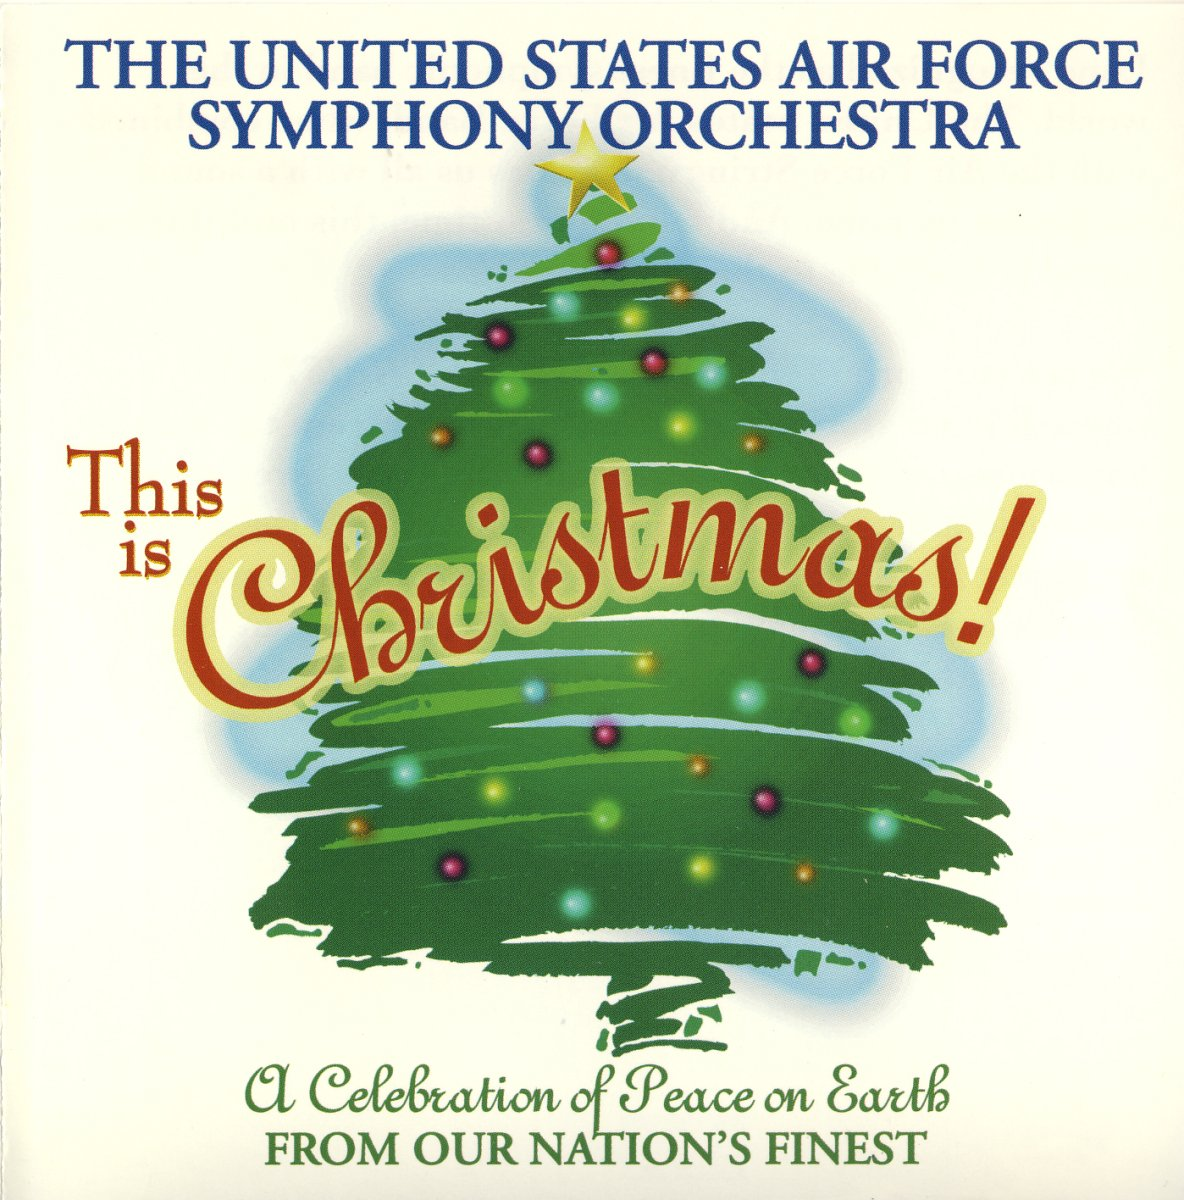 This is Christmas! - The United States Air Force Symp Orchestra